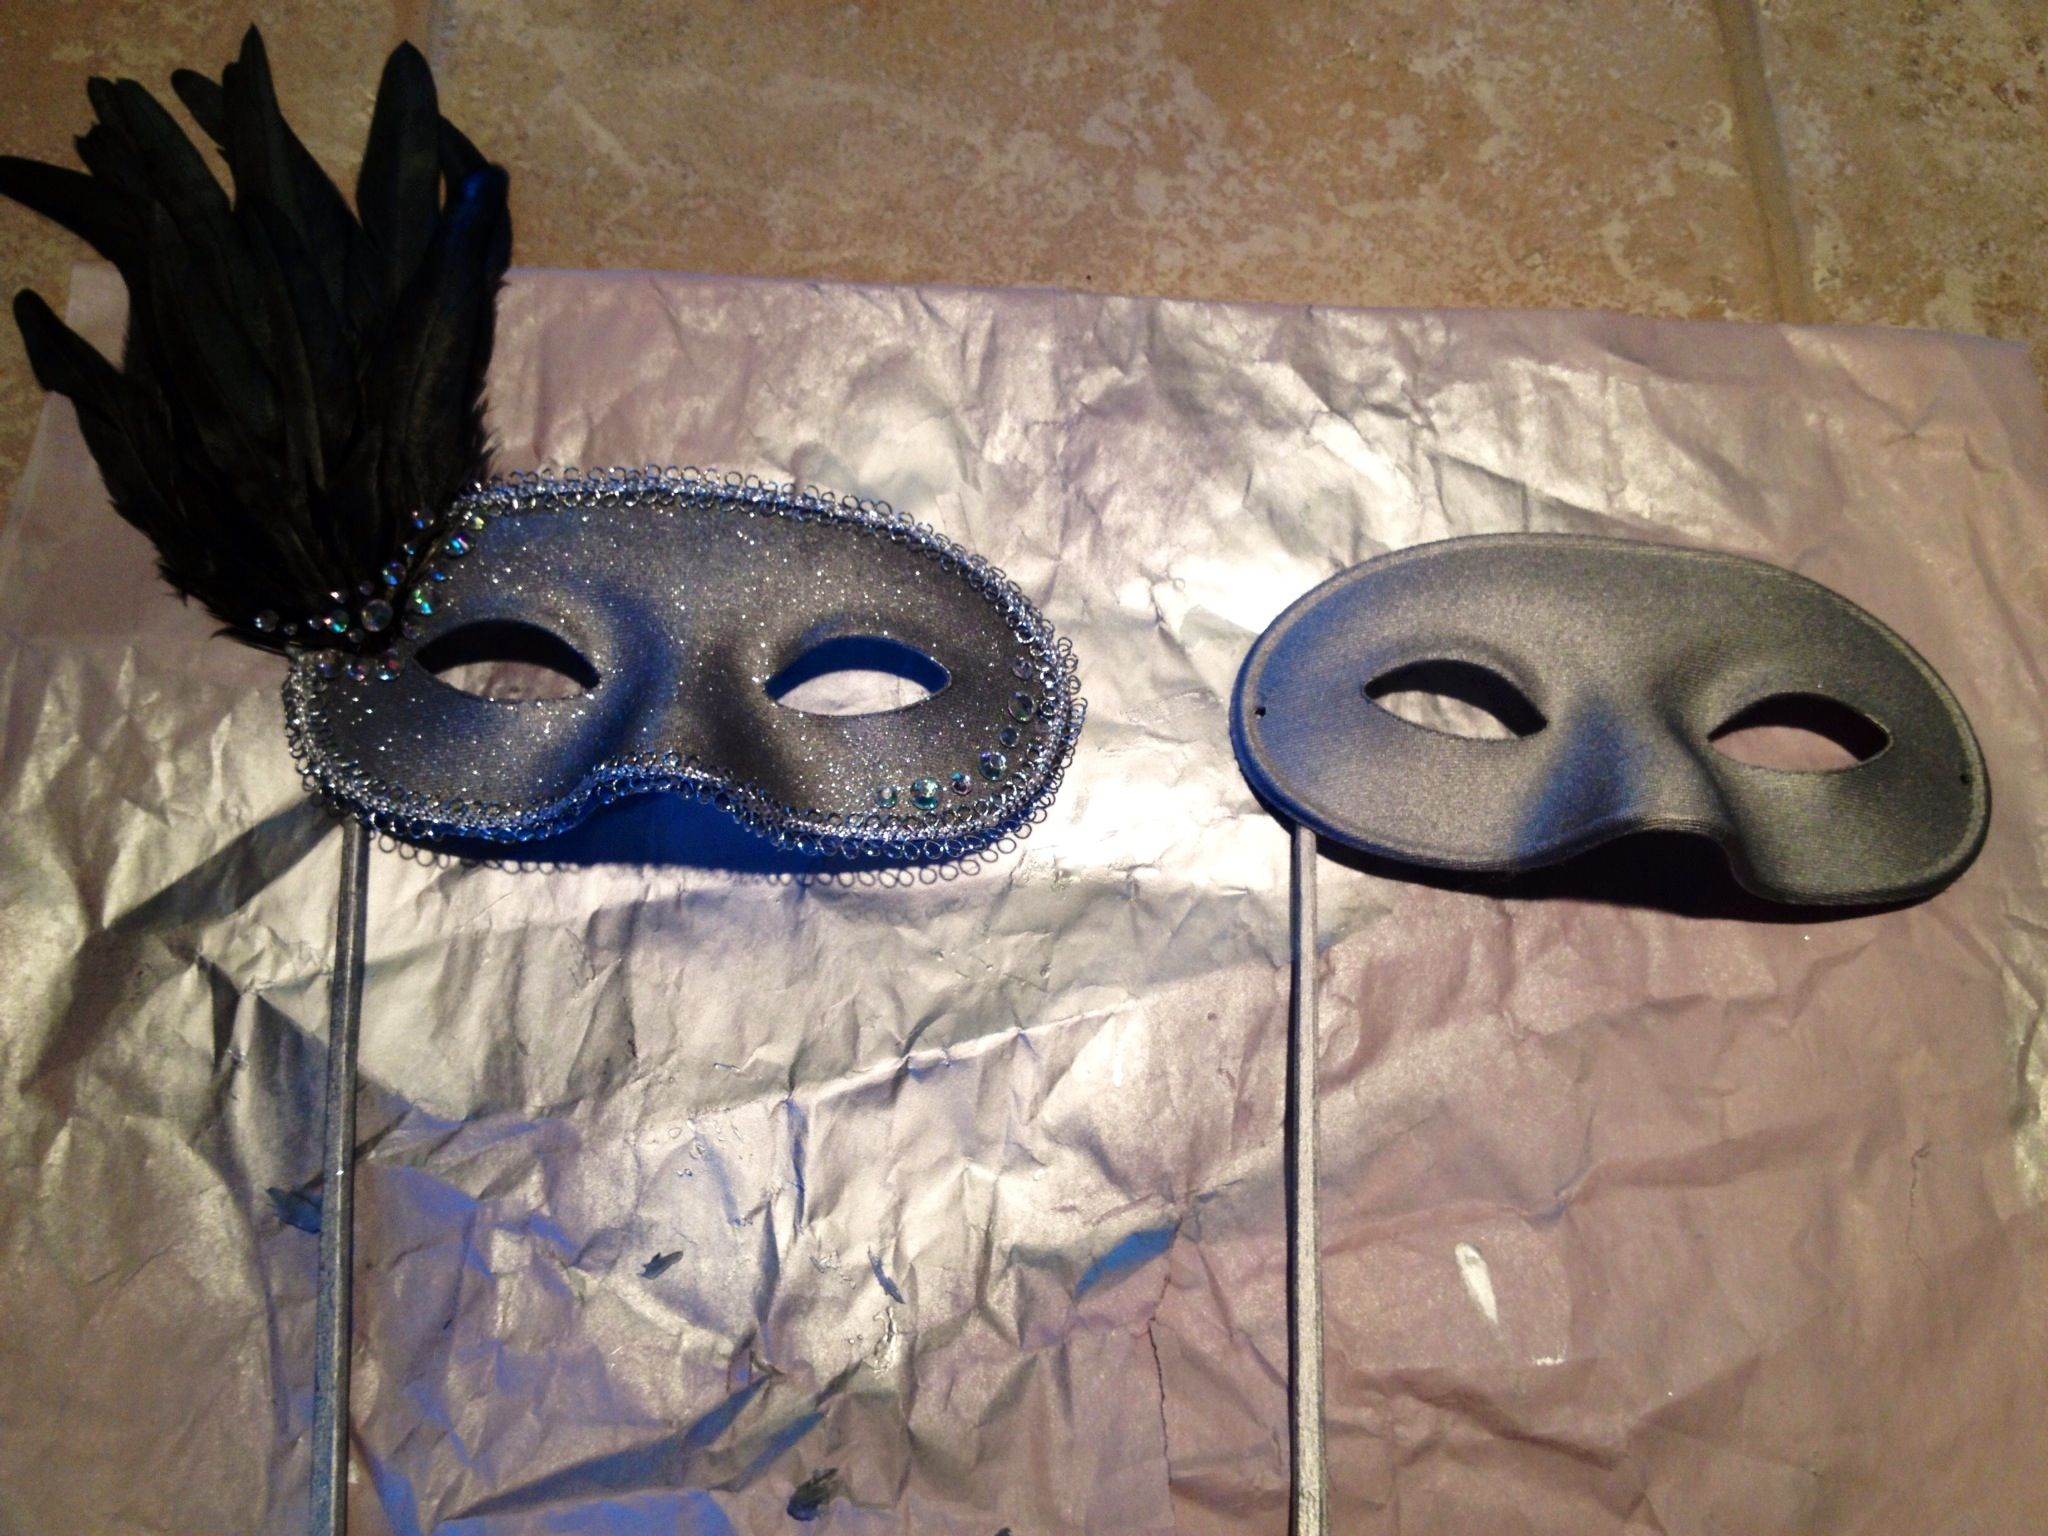 How To Decorate A Mask Entrancing Diy Masquerade Masks  My Style  Pinterest  Masquerade Masks Design Ideas